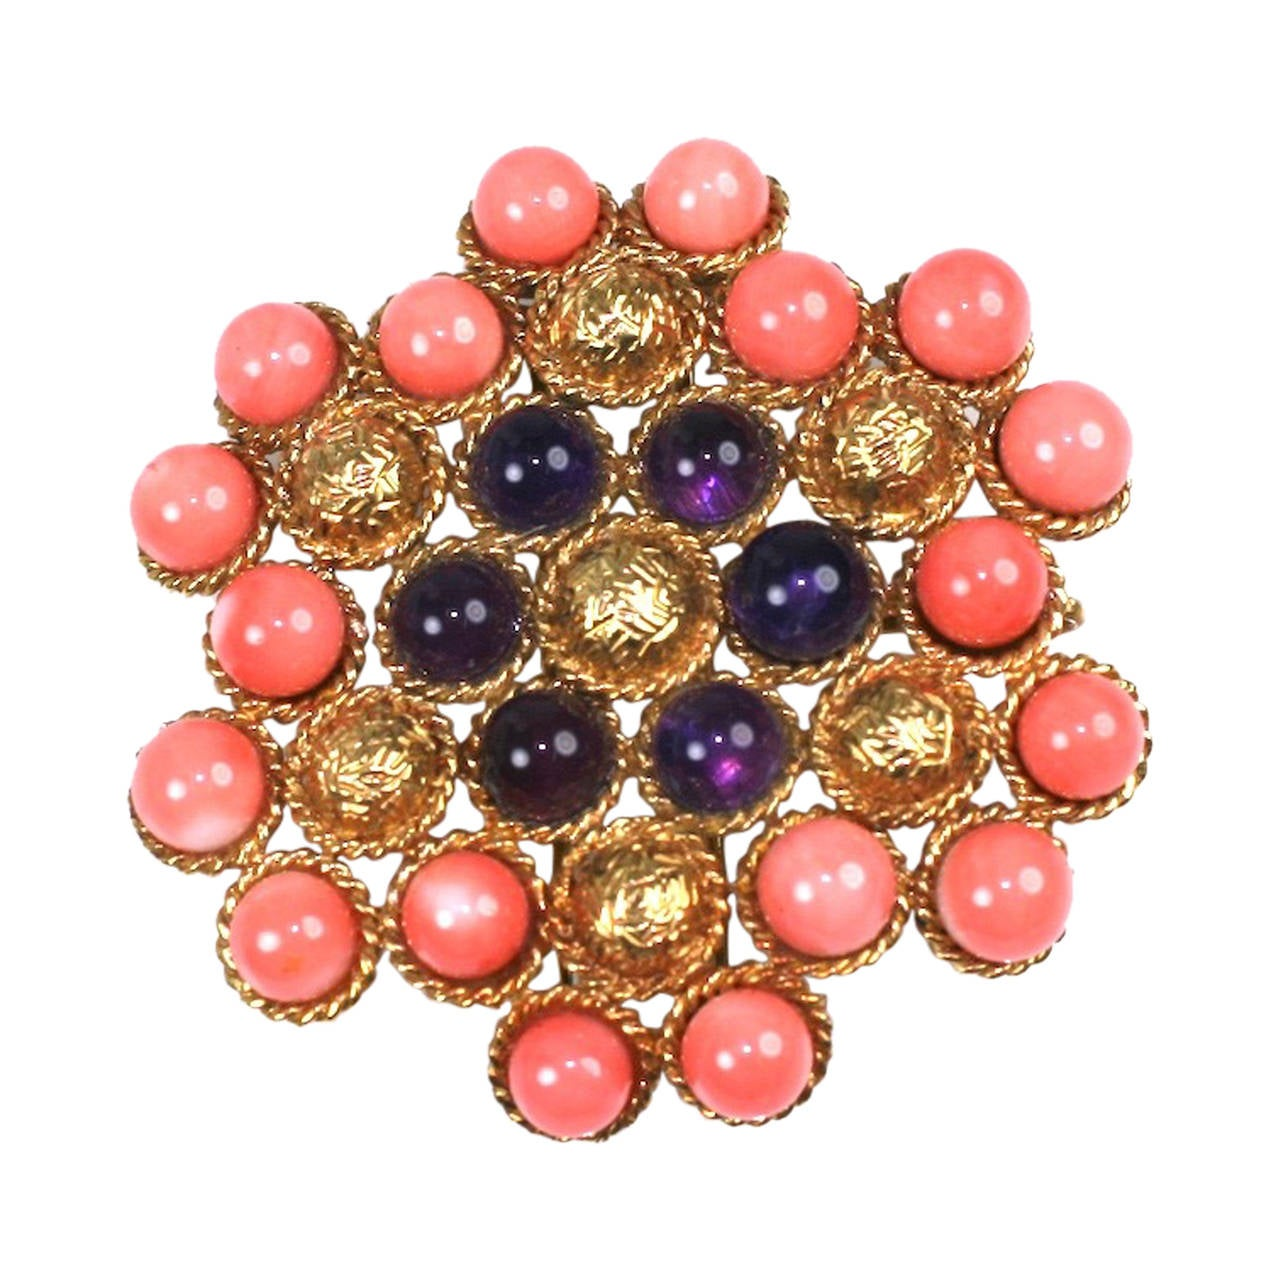 Coral and Amythest Textured Gold Clip For Sale